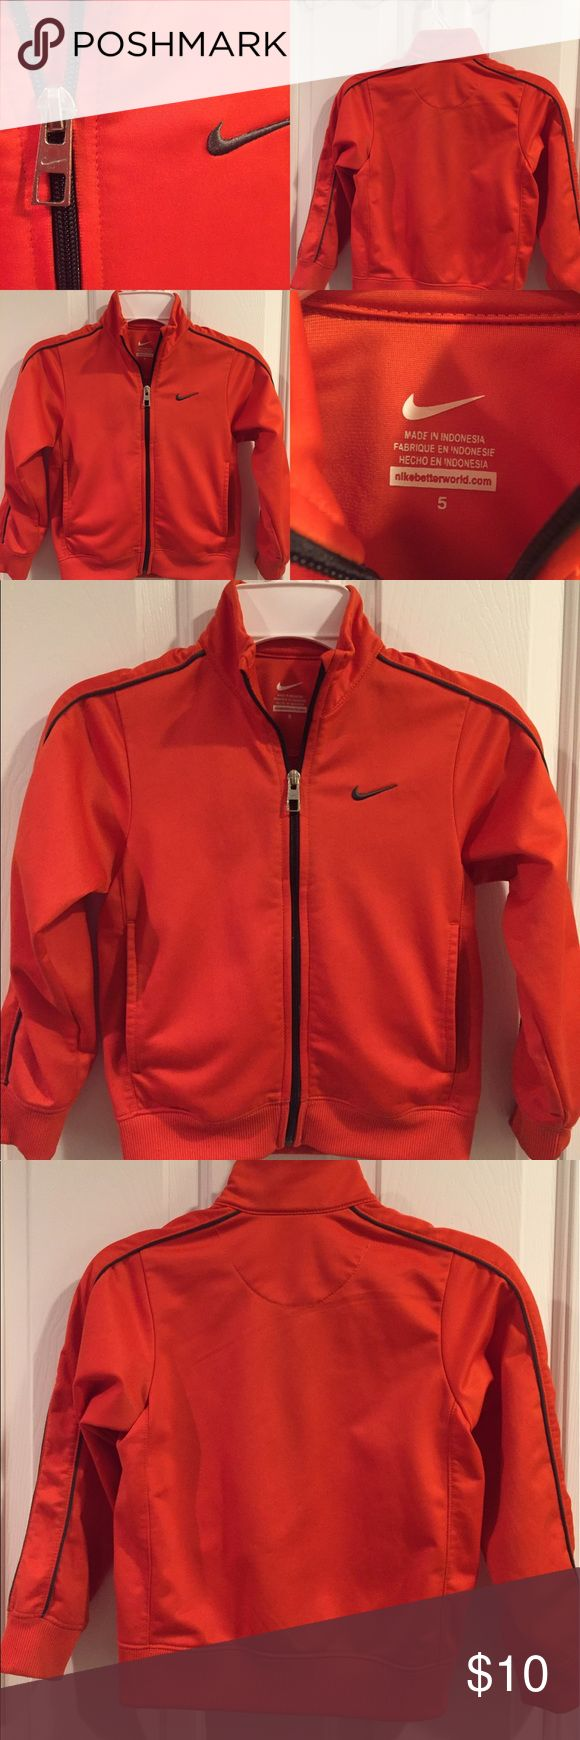 Orange Nike Track Jacket 5T EUC Orange Nike Track Jacket 5T. This jacket has been washed but never dried. It is now ready for a new home! Nike Jackets & Coats